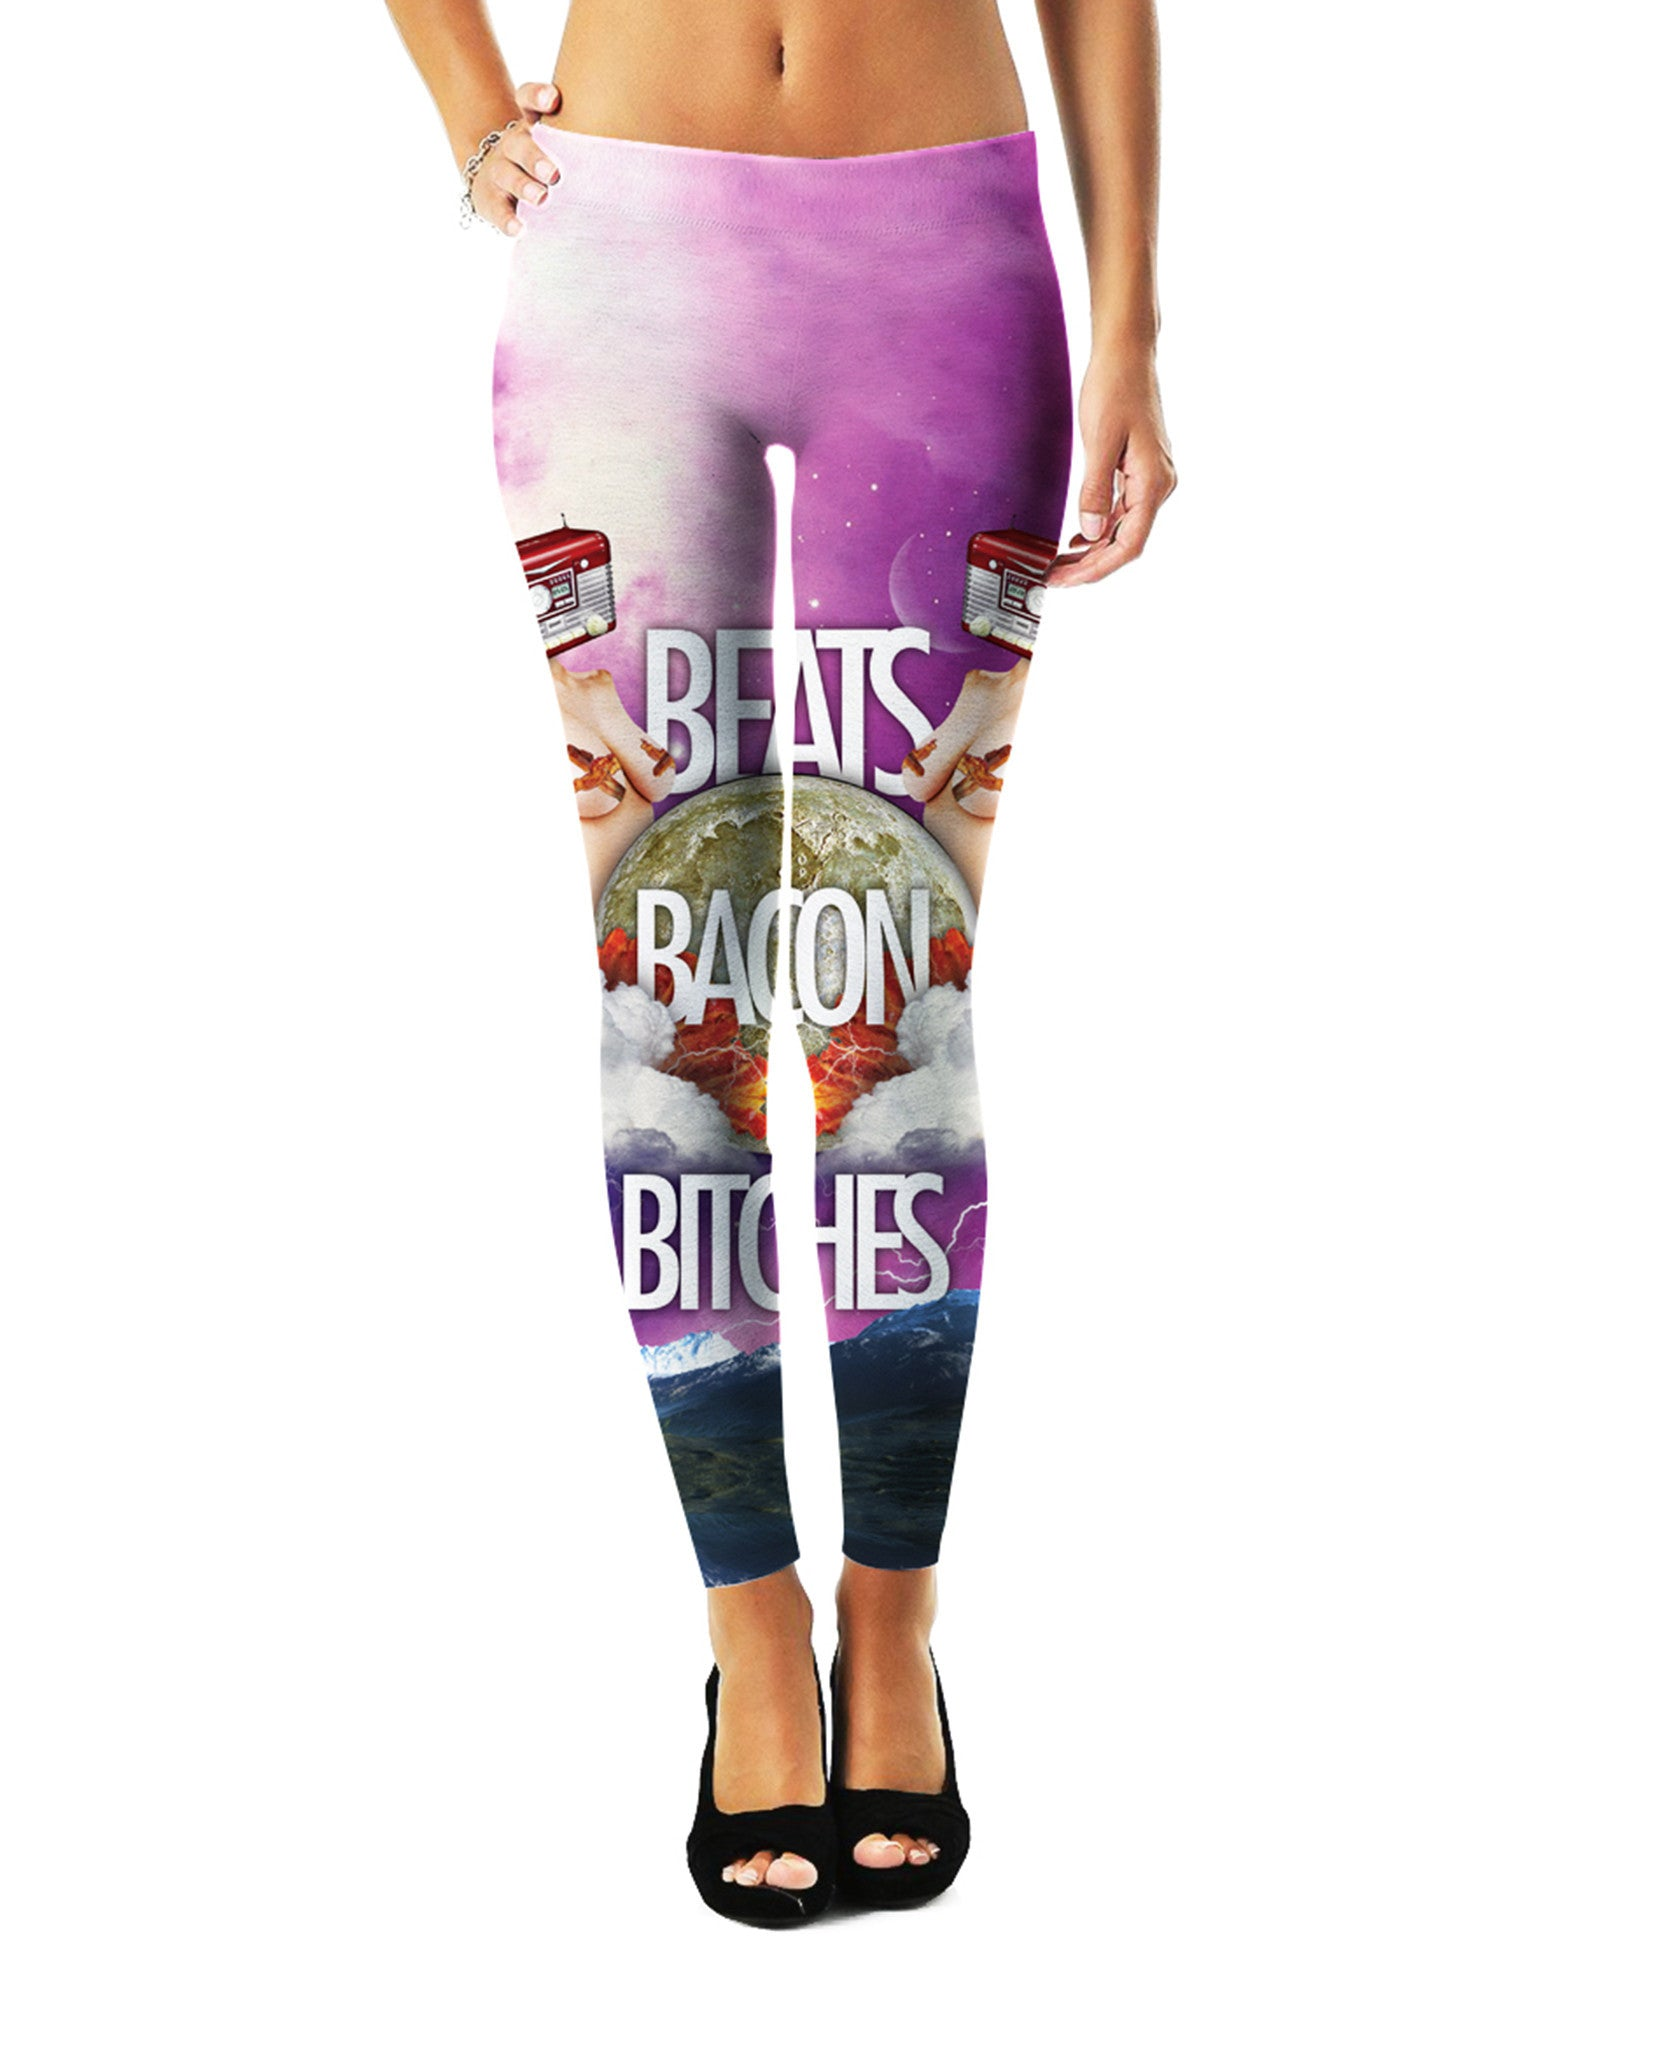 Beats Bacon Bitches Leggings - TShirtsRUS.co